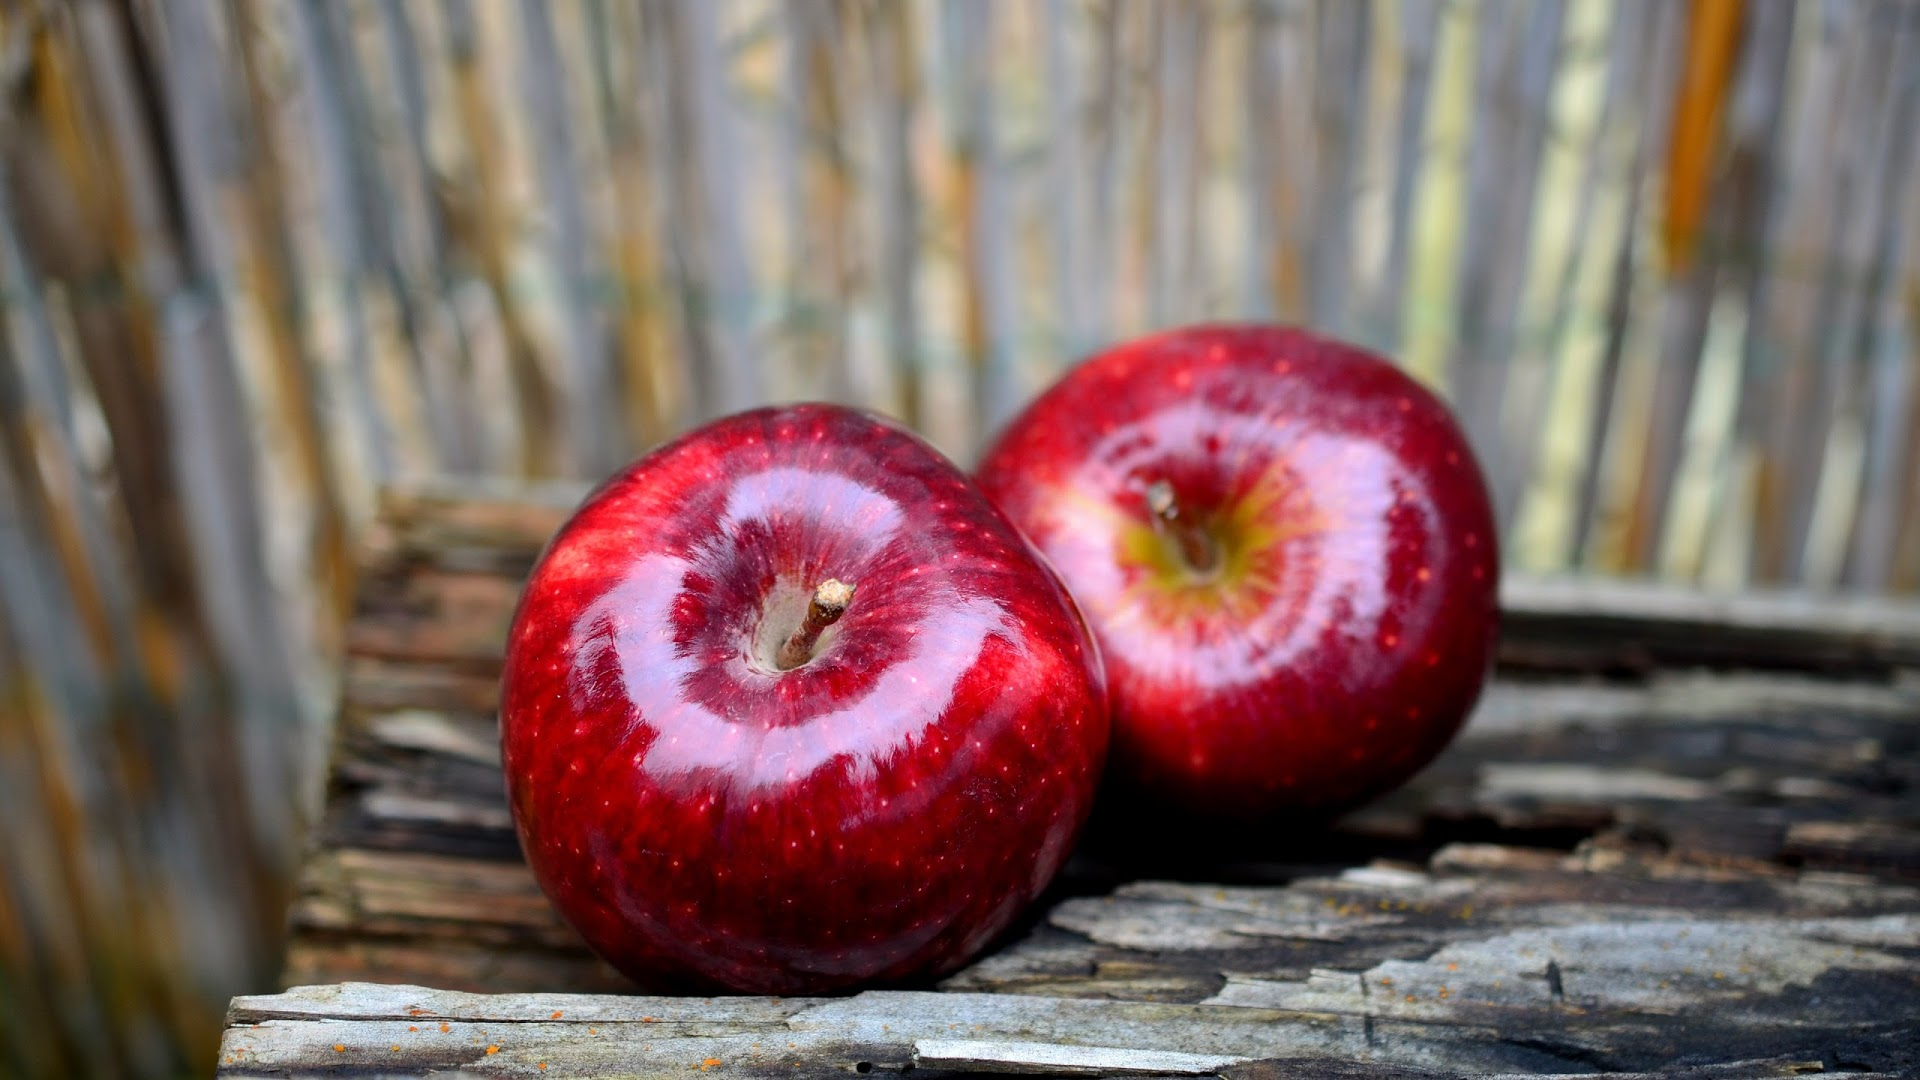 Download 1920x1080 Wallpaper Fruits Red Apples Full Hd Hdtv Fhd